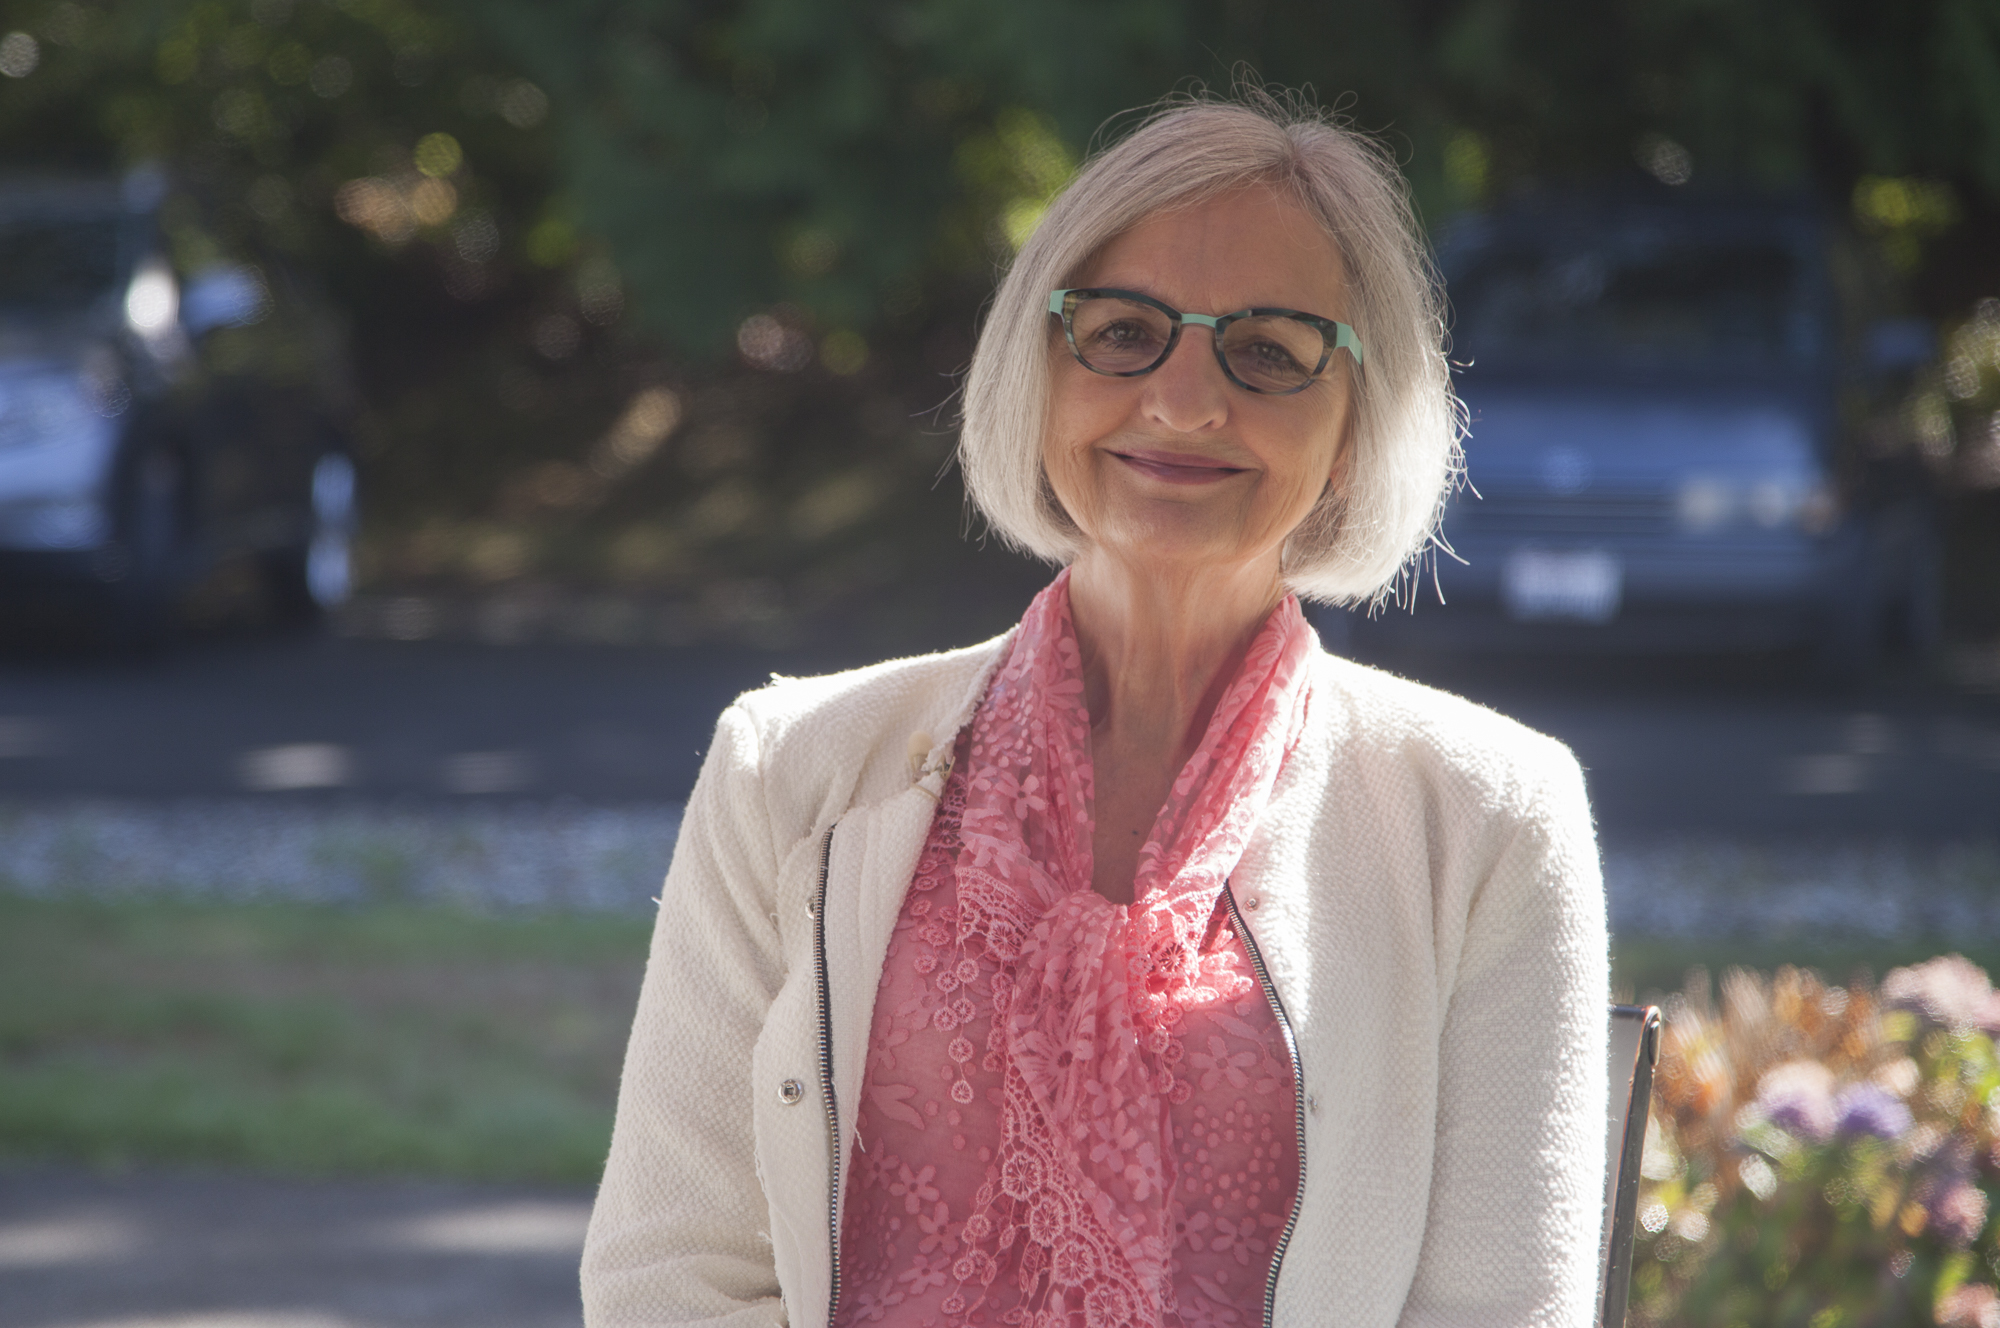 Andi Bailey, Alliance Nursing Founder and CEO